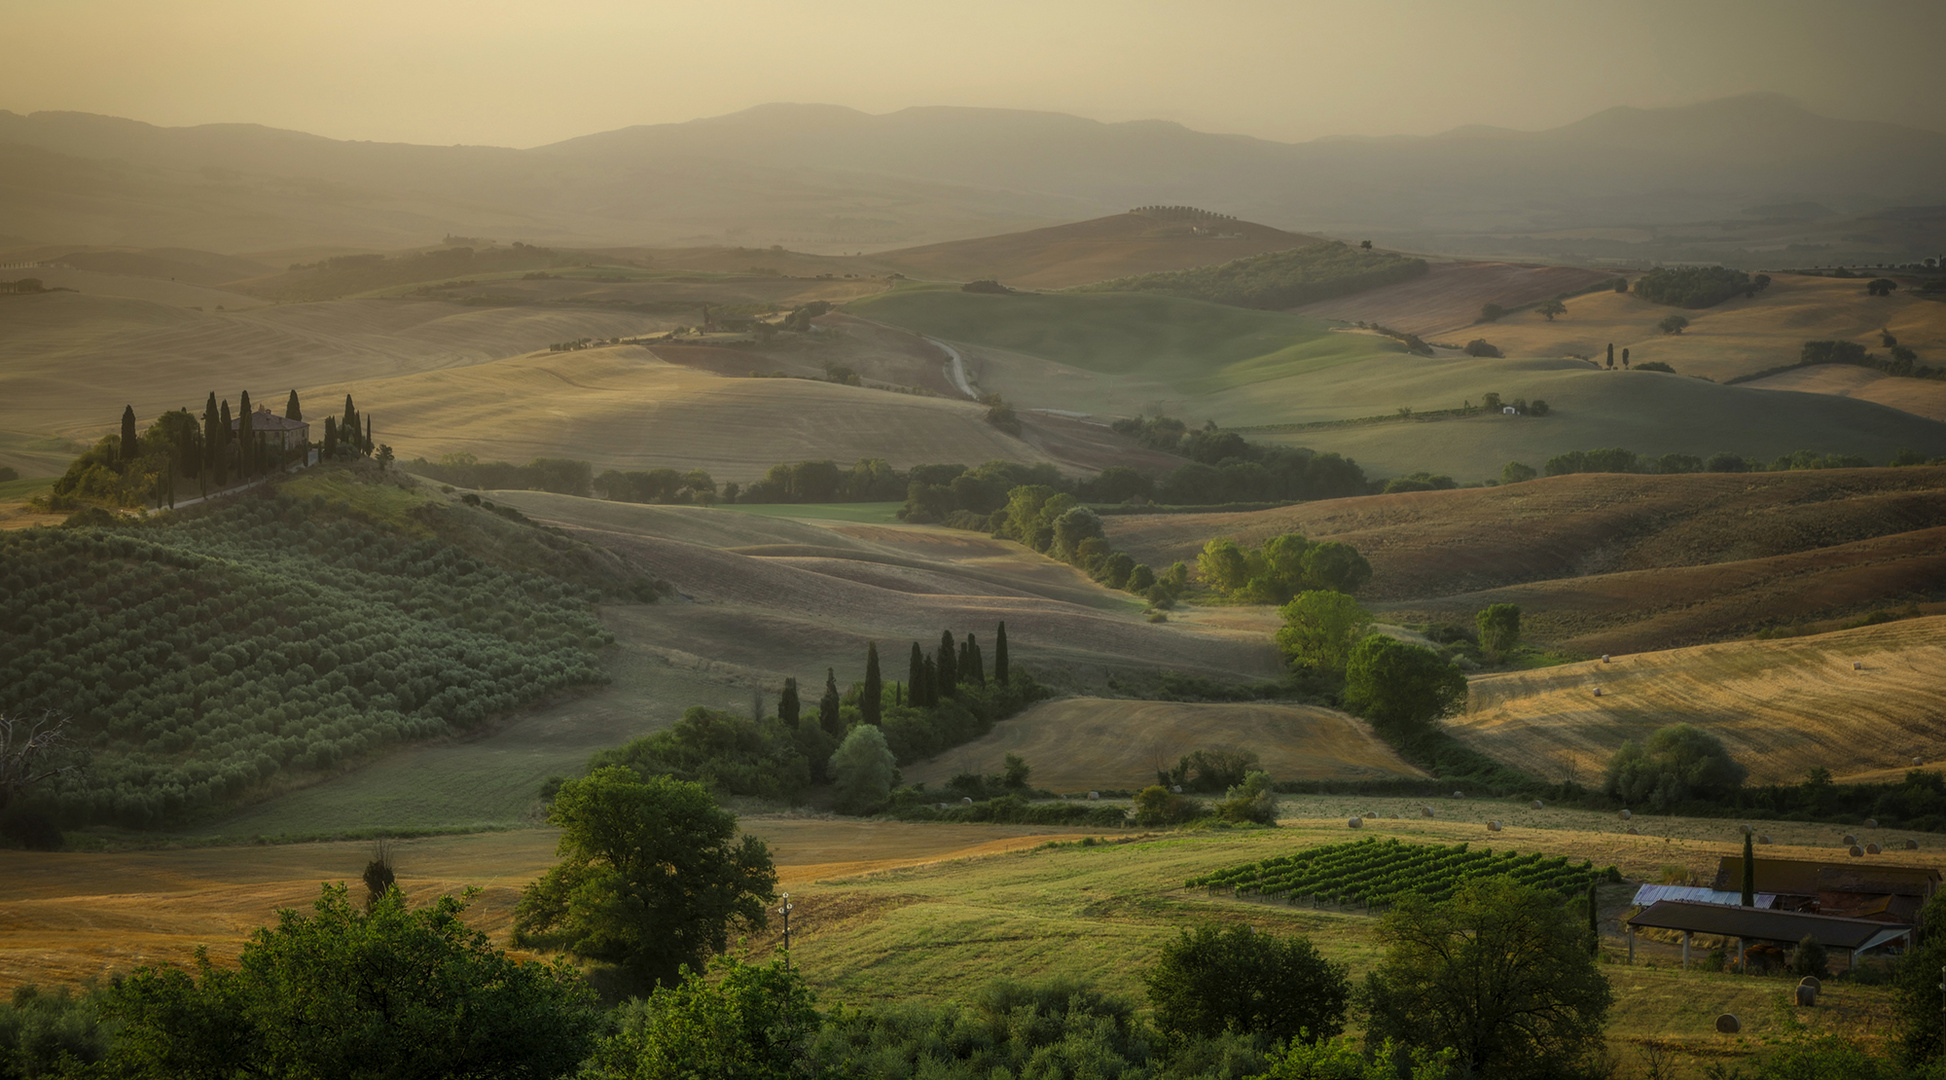 Belvedere-S Quirico Orcia-the day begins